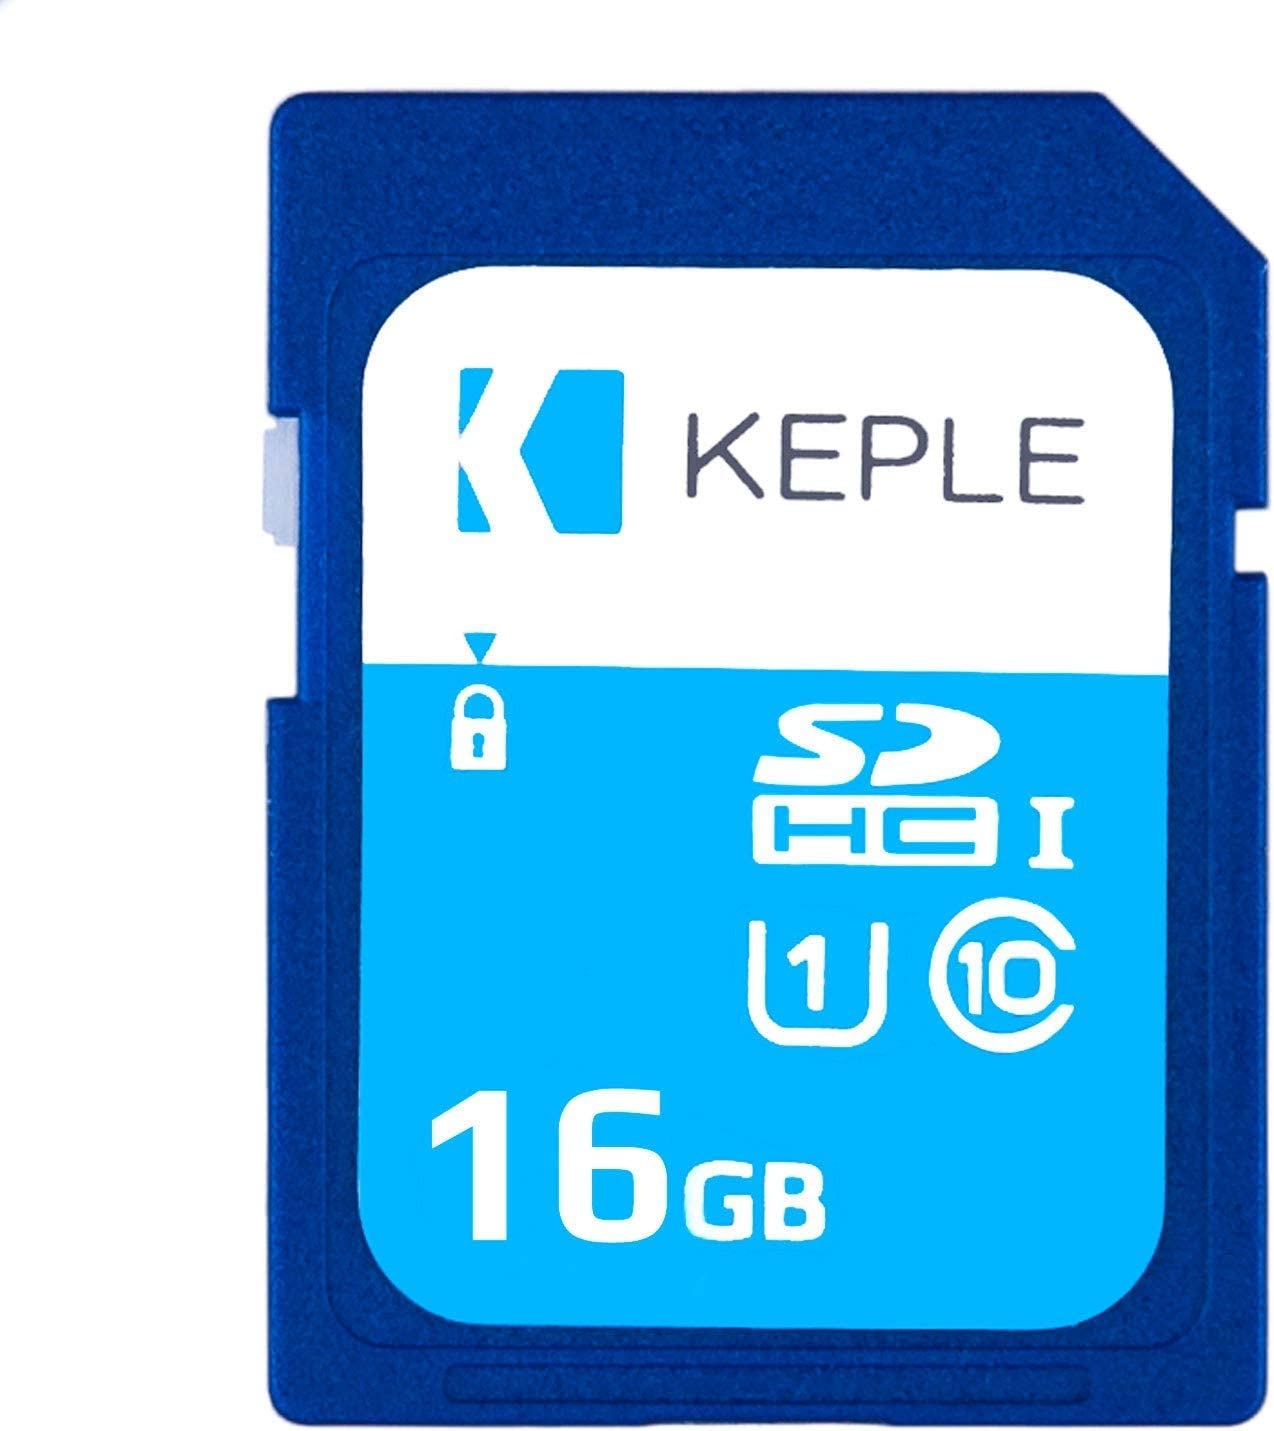 16GB SD Memory Card by Keple | SD Card for Canon IXUS Series 200, 285, 132 HS, 140, 175, 160, 165, 170, 180, 225 HS, 265 HS, 275 HS PS GS, XC10, N100 DSLR Digital Camera | 16 GB [並行輸入品]